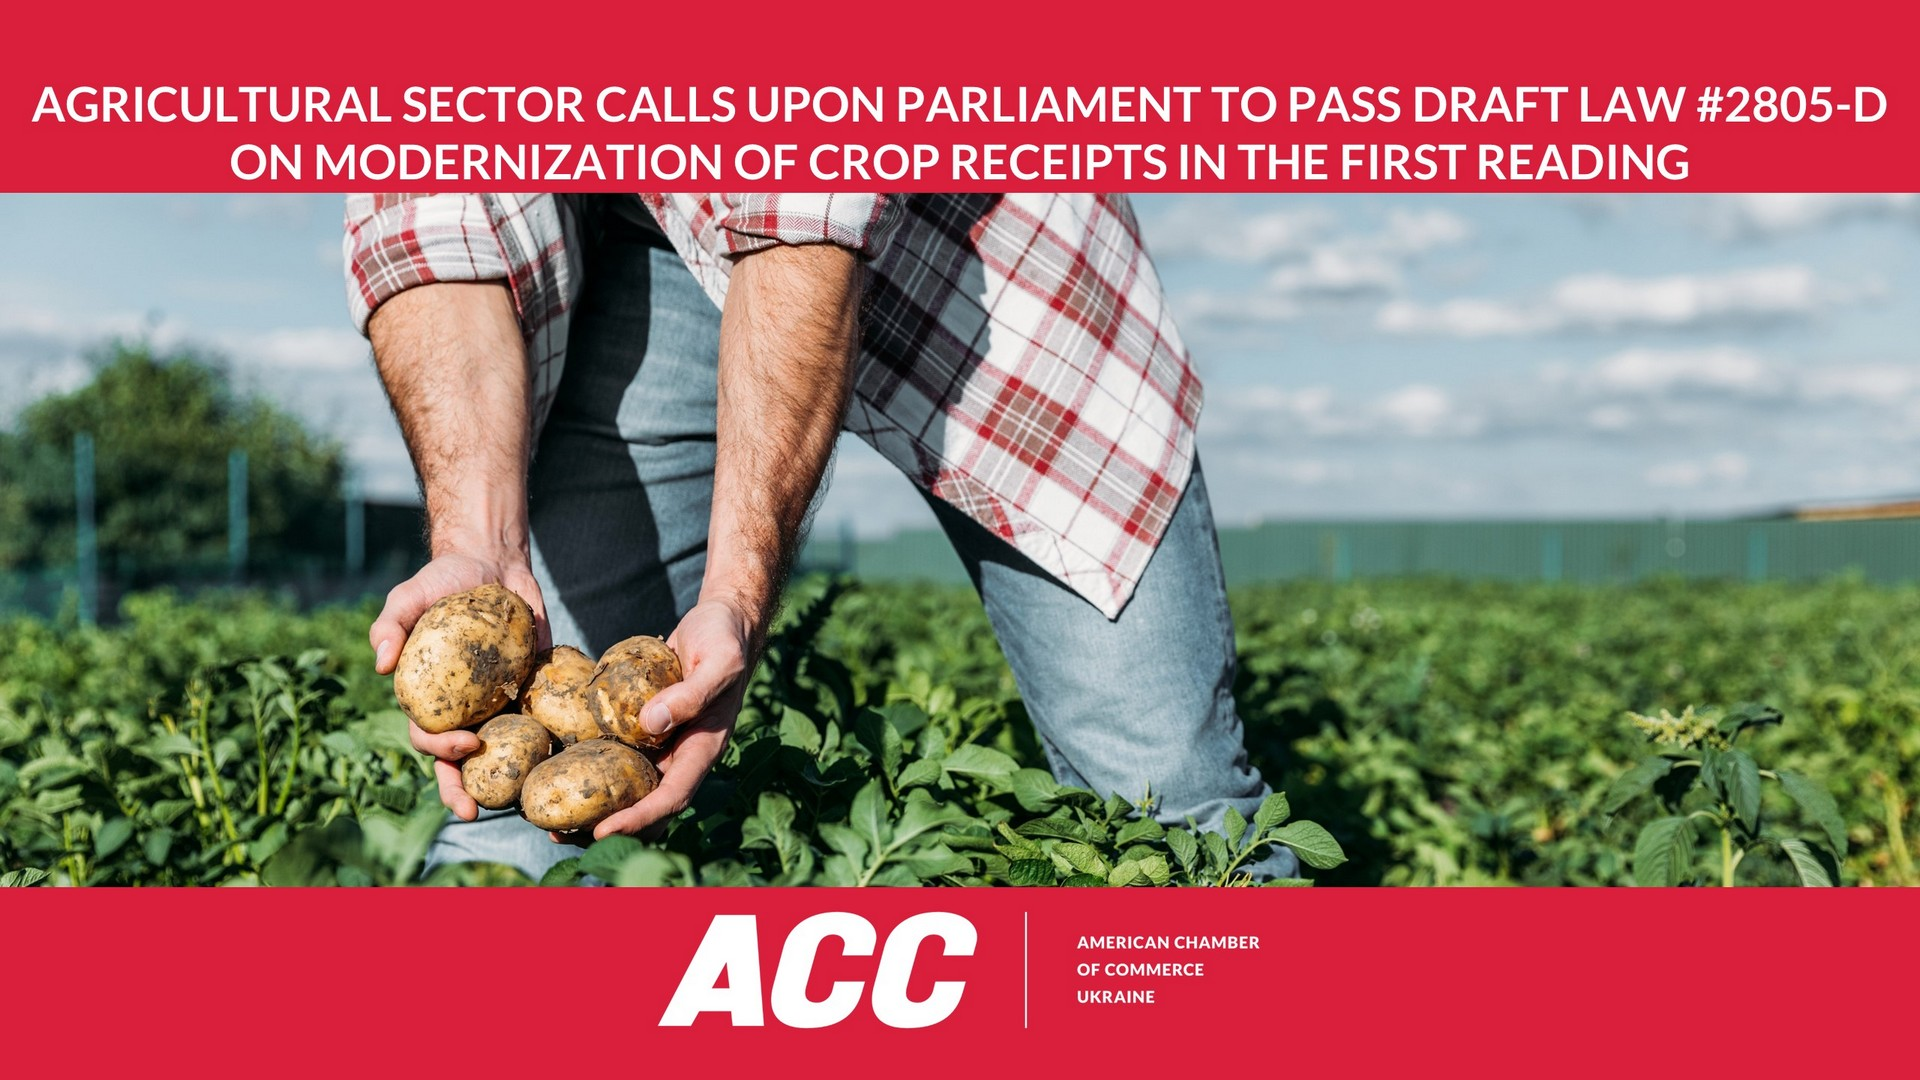 Agricultural Sector Calls Upon Parliament to Pass Draft Law #2805-d on Modernization of Crop Receipts in the First Reading